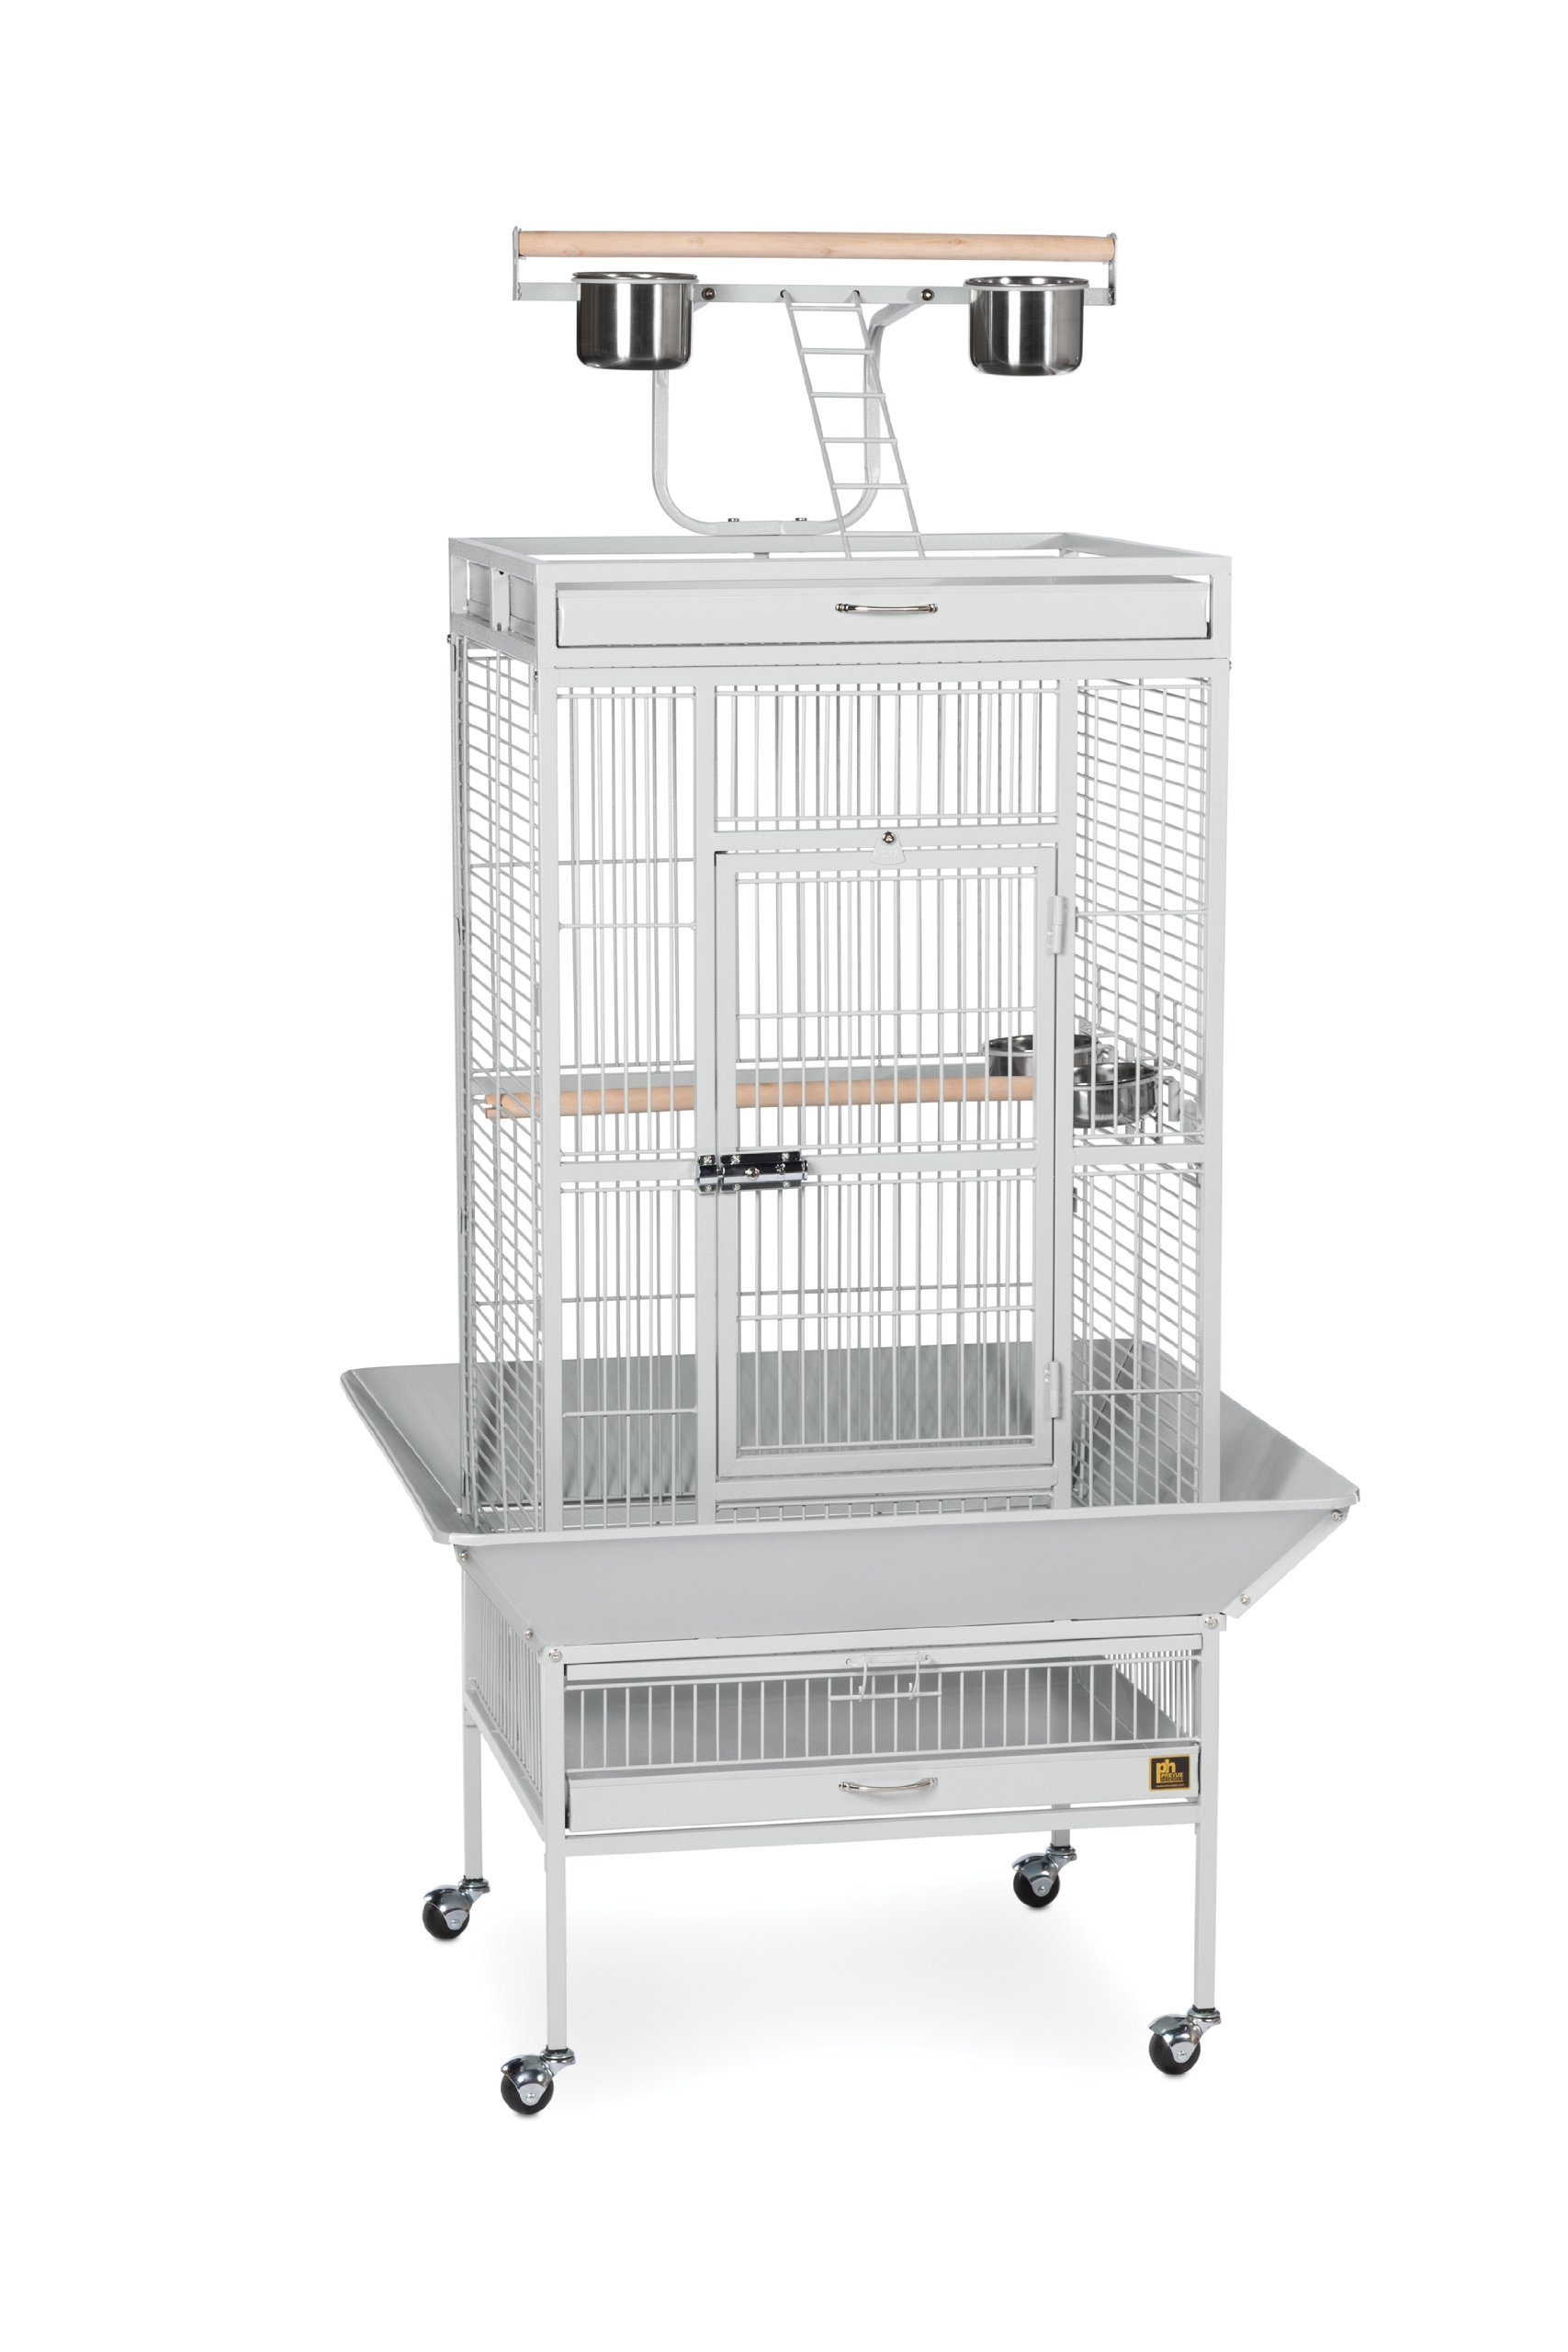 Prevue Pet Products Wrought Iron Select Bird Cage 3152W Pewter, 24-Inch by 20-Inch by 60-Inch by Prevue Hendryx